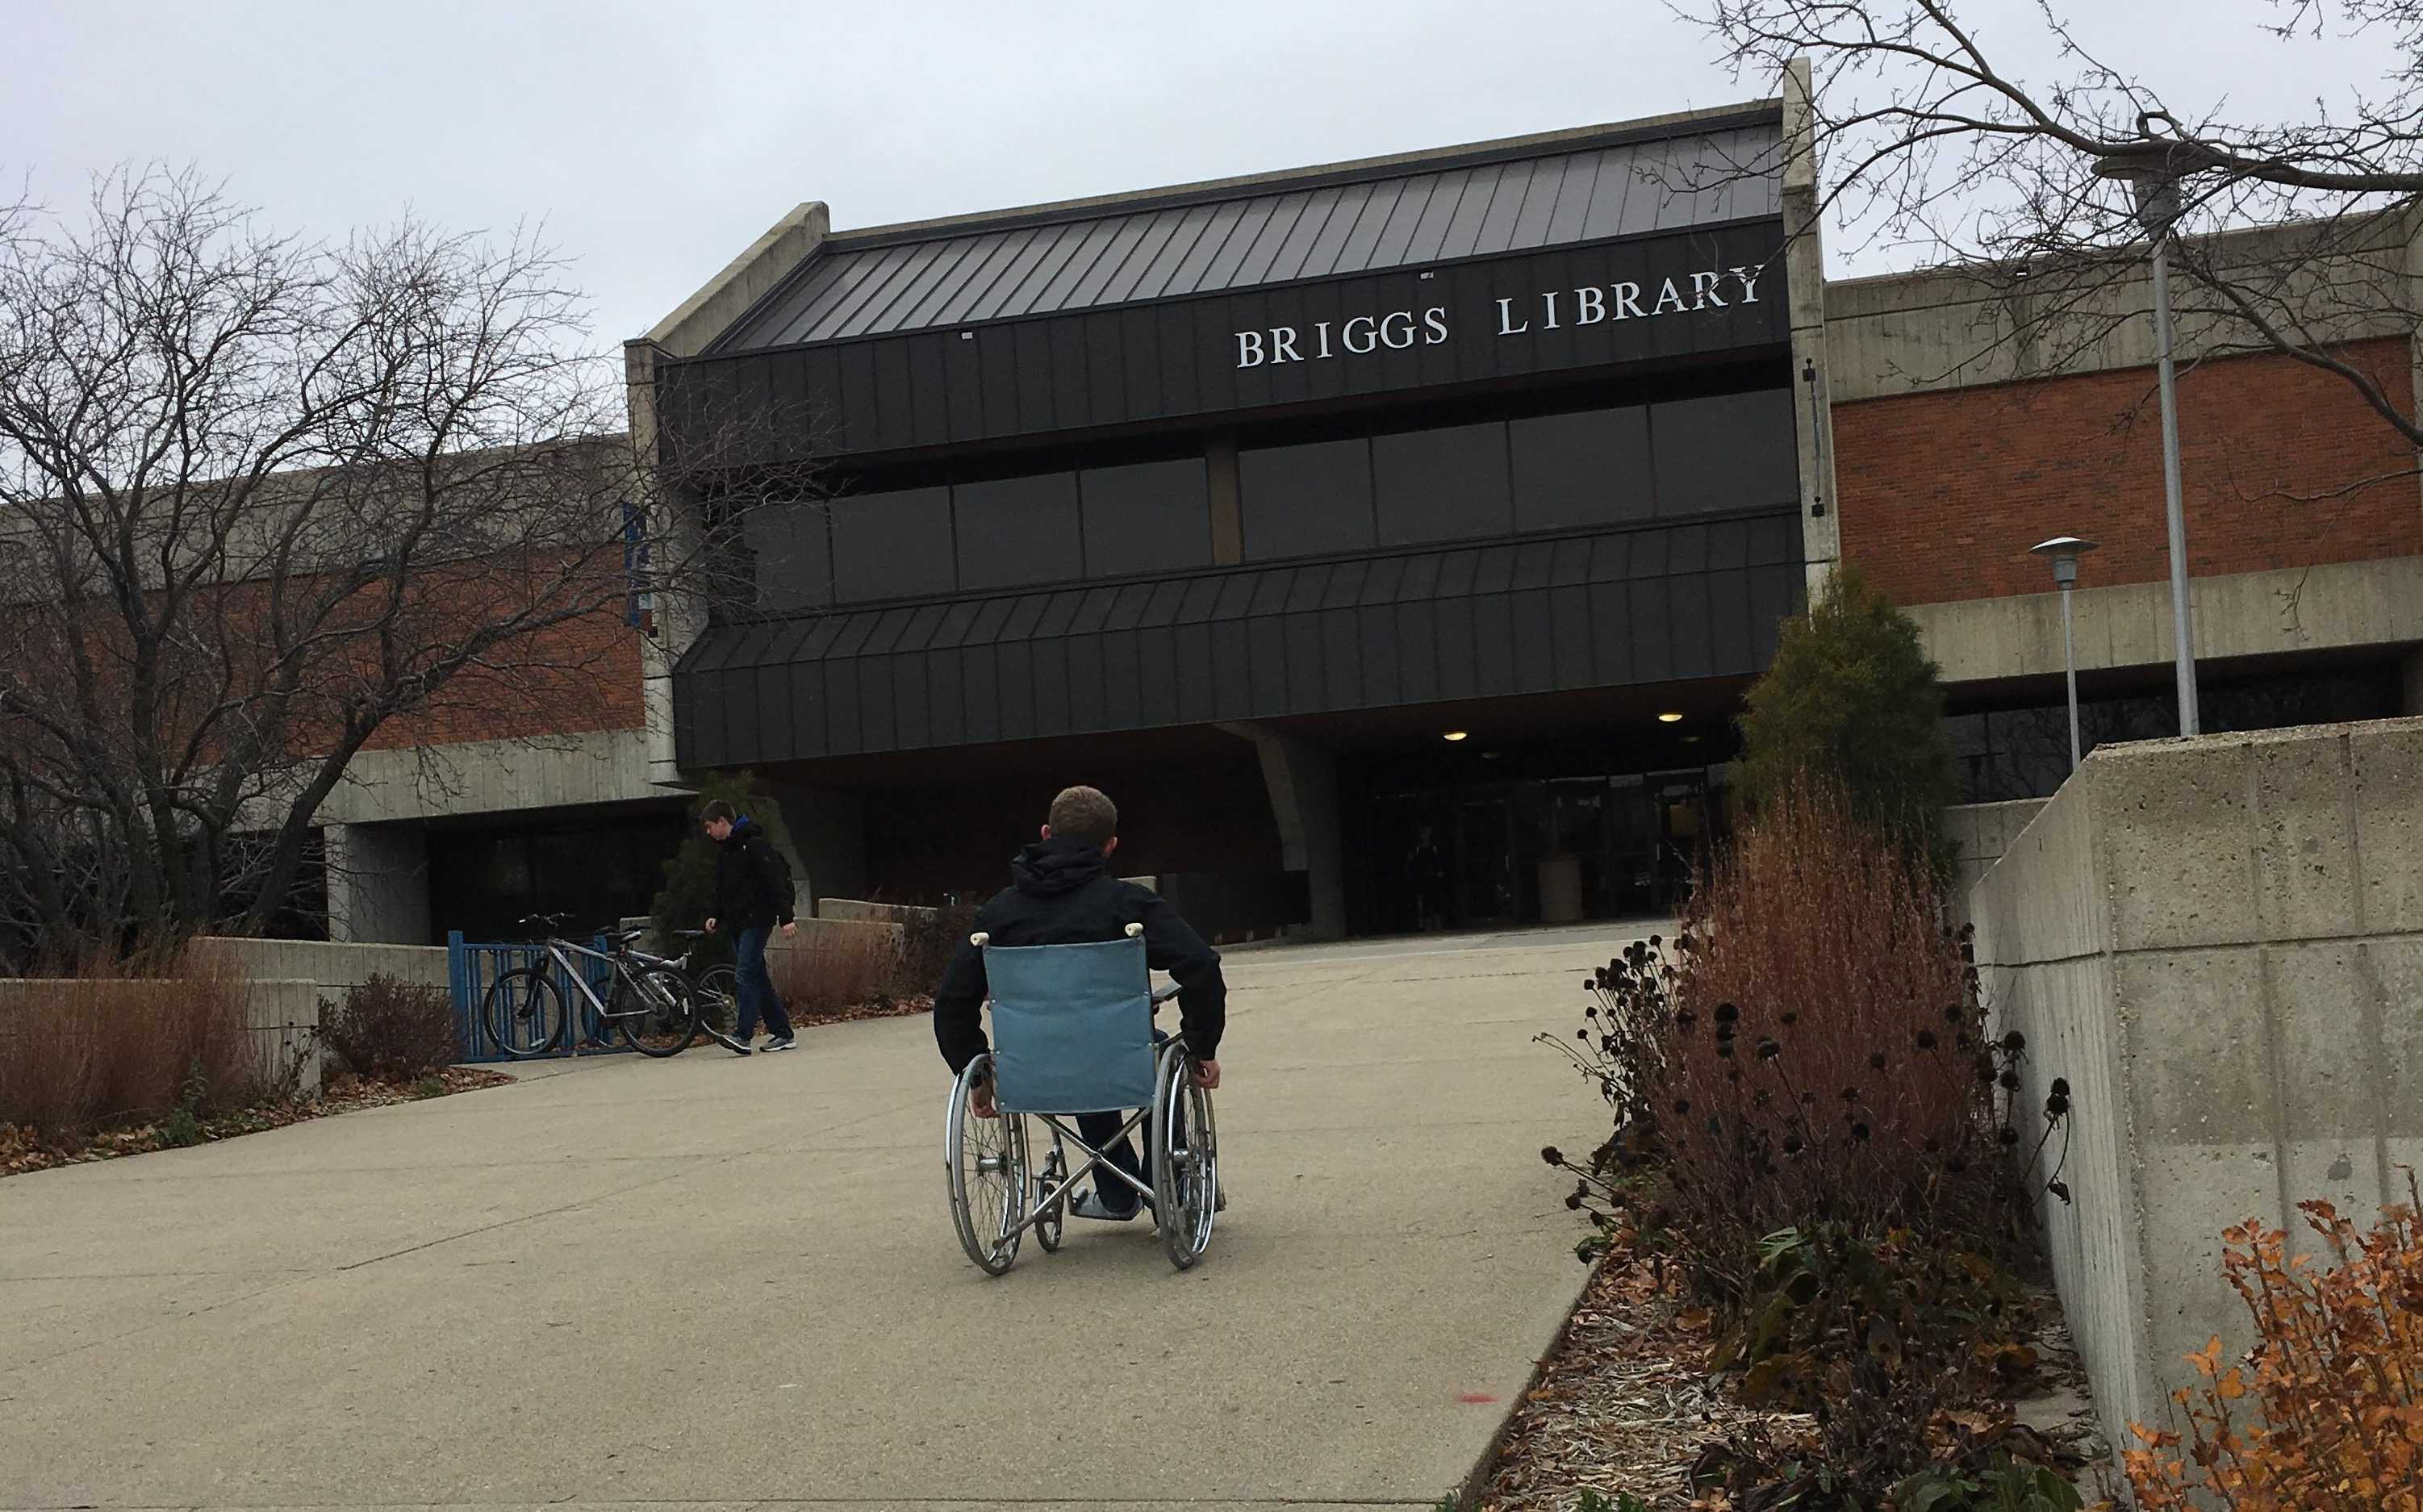 ABBY DONKERS Kyle Kueper, a senior architecture major, participated in Donkers' project and used a wheelchair to get around campus.